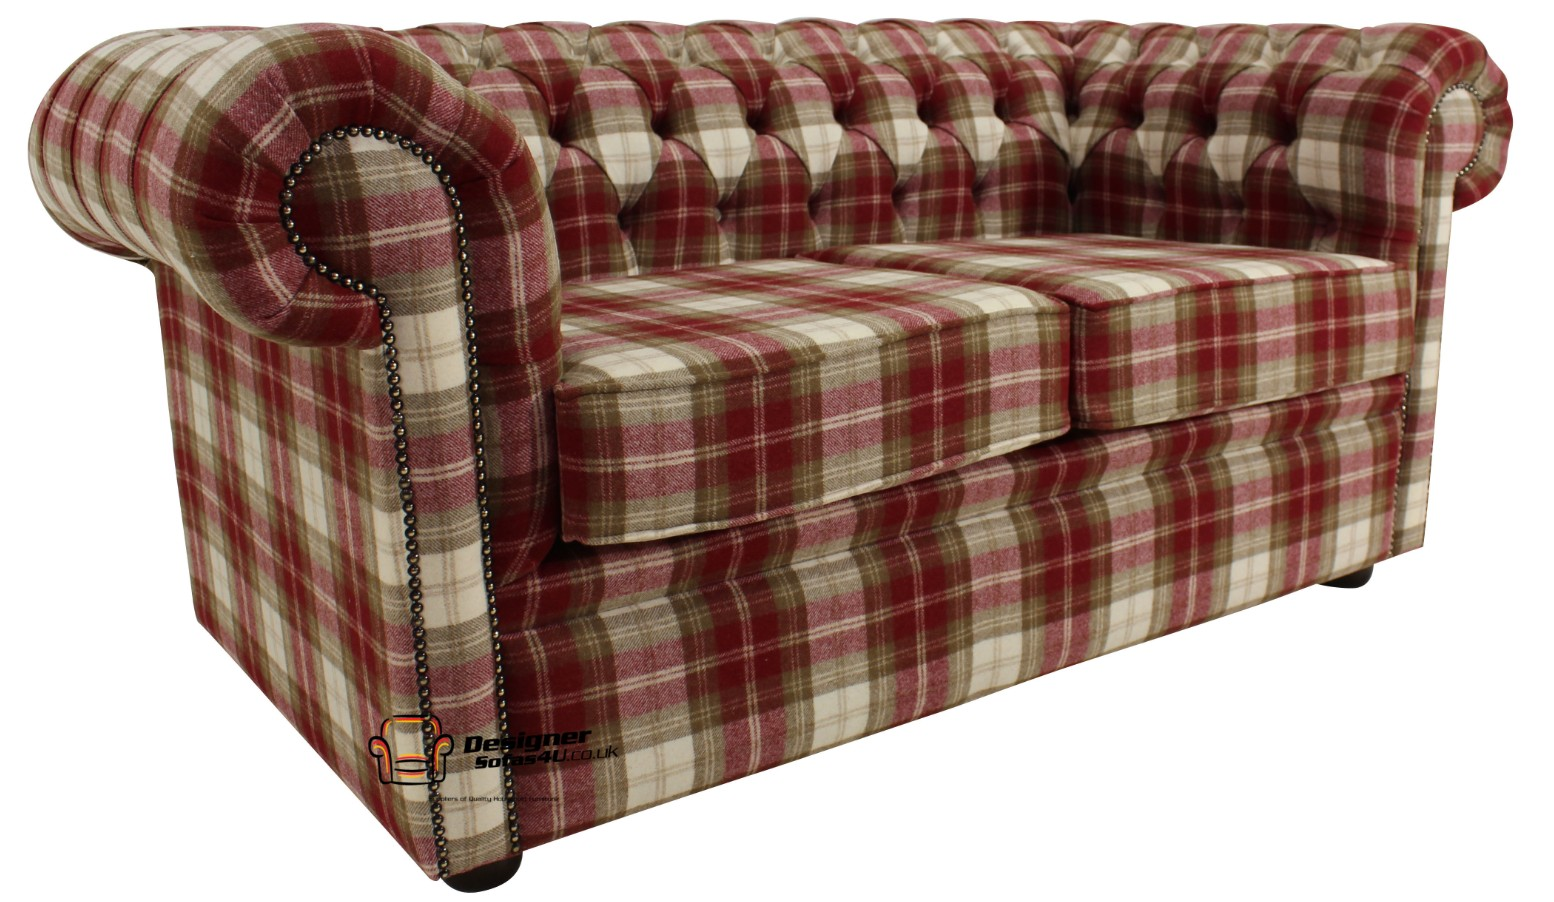 tartan chesterfield sofa designs of l shaped sets buy red wool at designersofas4u 2 seater settee fernie check tweed